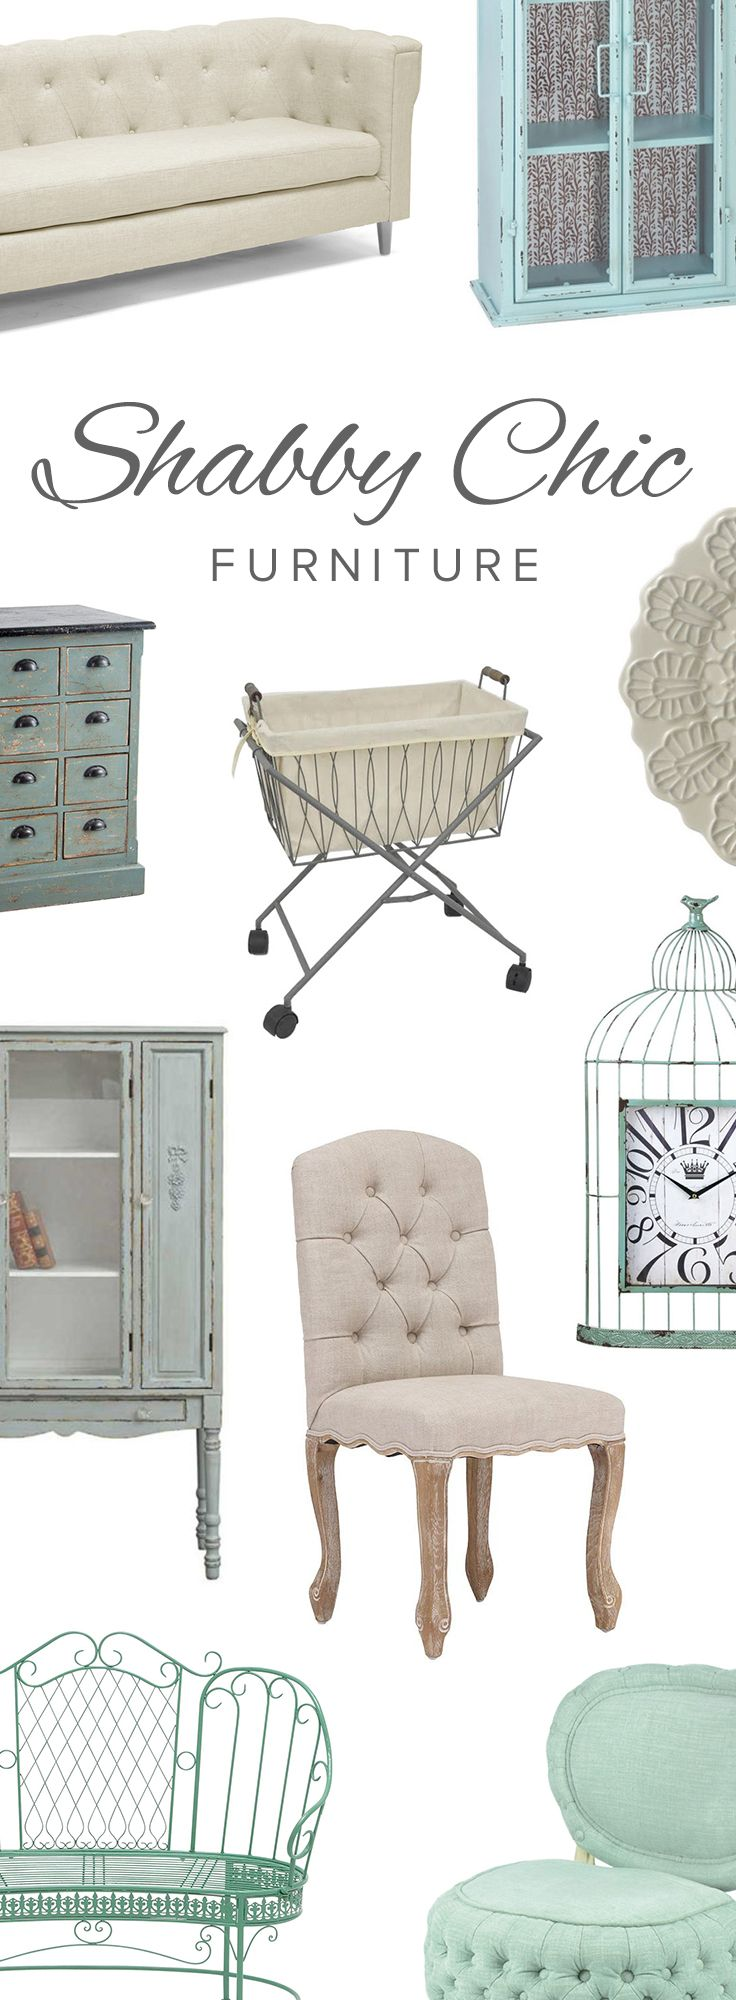 Shabby Chic Furniture Collection